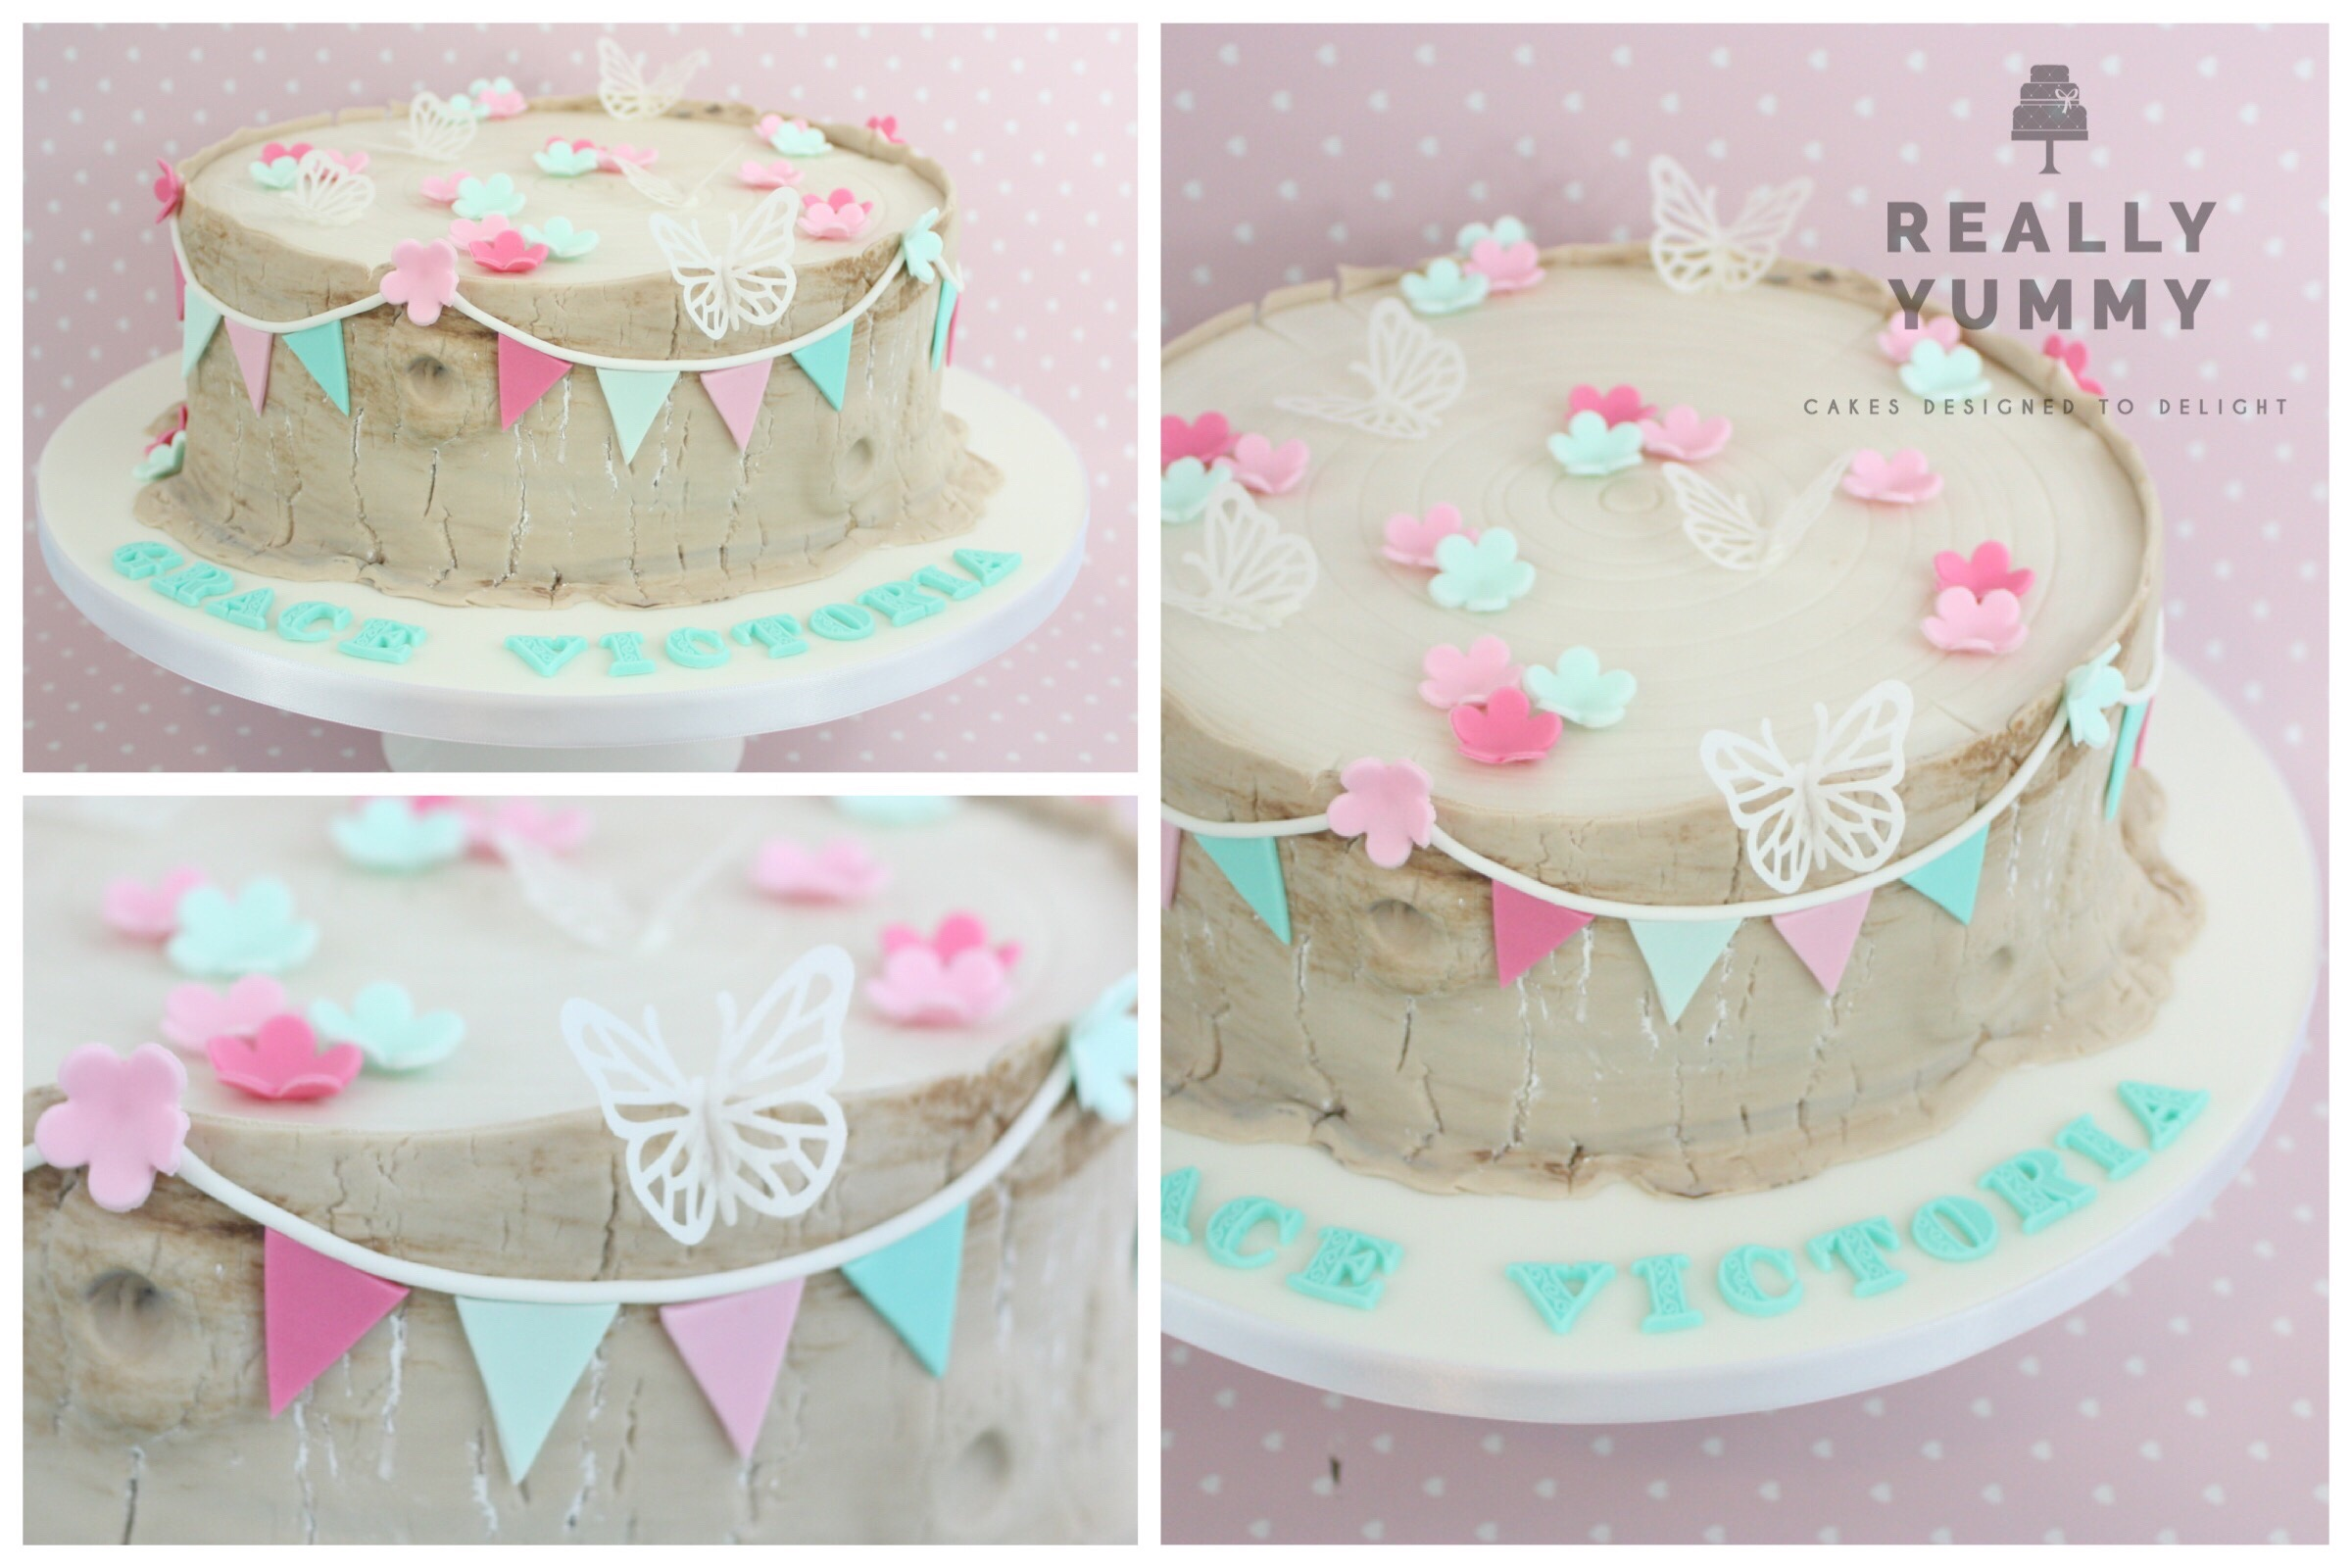 This gorgeous cake was for Grace, and included pretty bunting, flowers and rice paper butterflies. Such a sweet effect overall.